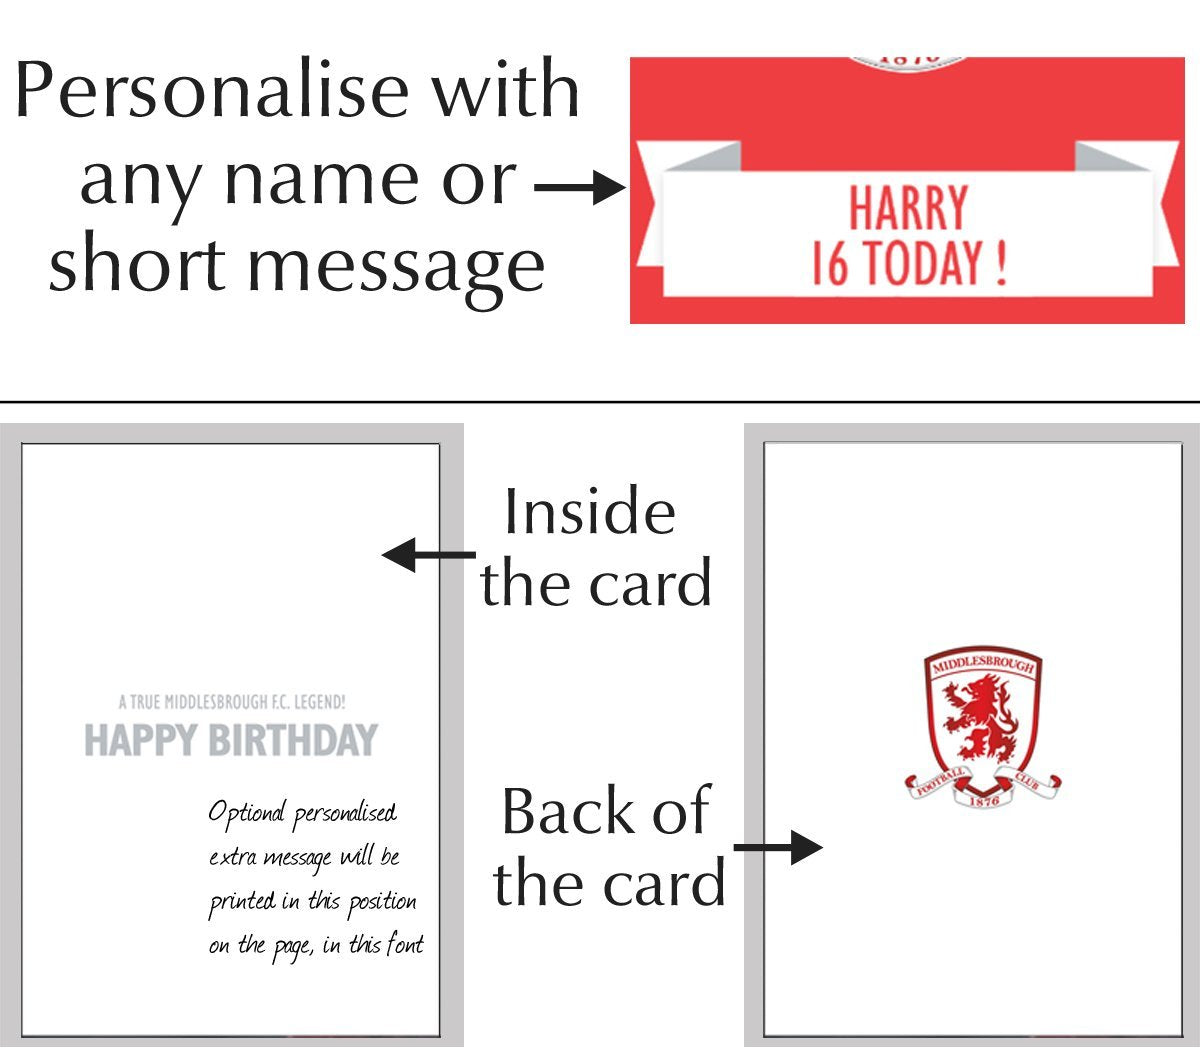 LARGE A5 GLOSSY PERSONALISED MIDDLESBOROUGH BIRTHDAY CARD